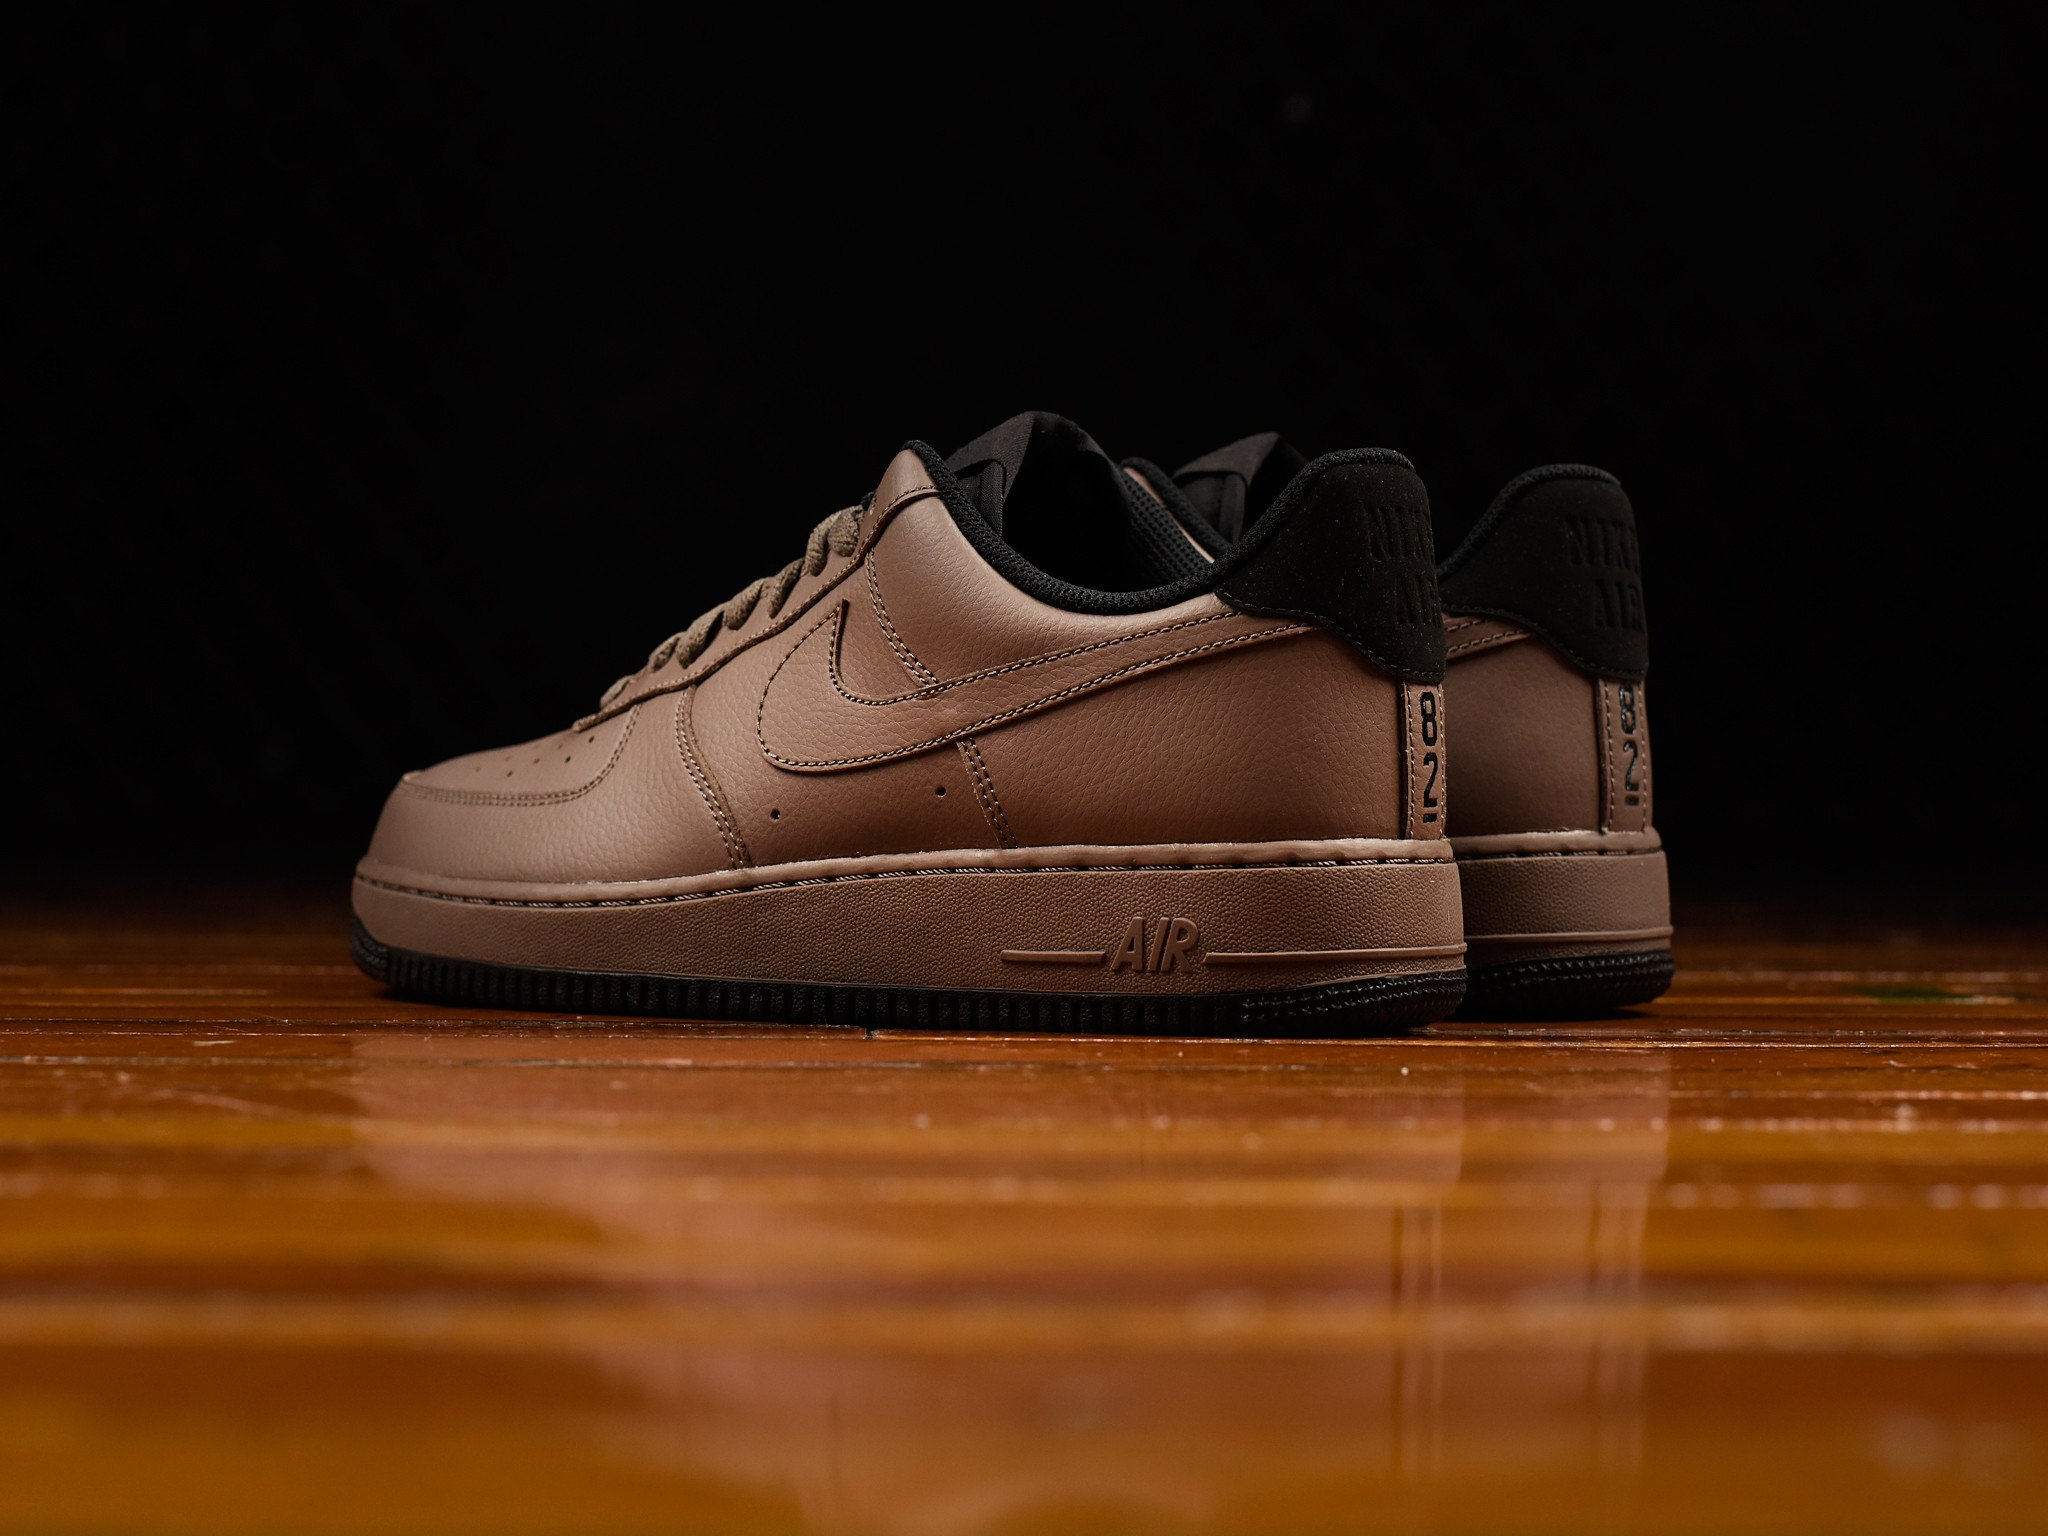 check out d0c05 60d64 The Nike Air Force 1 Low Dark Mushroom Is Up For Grabs